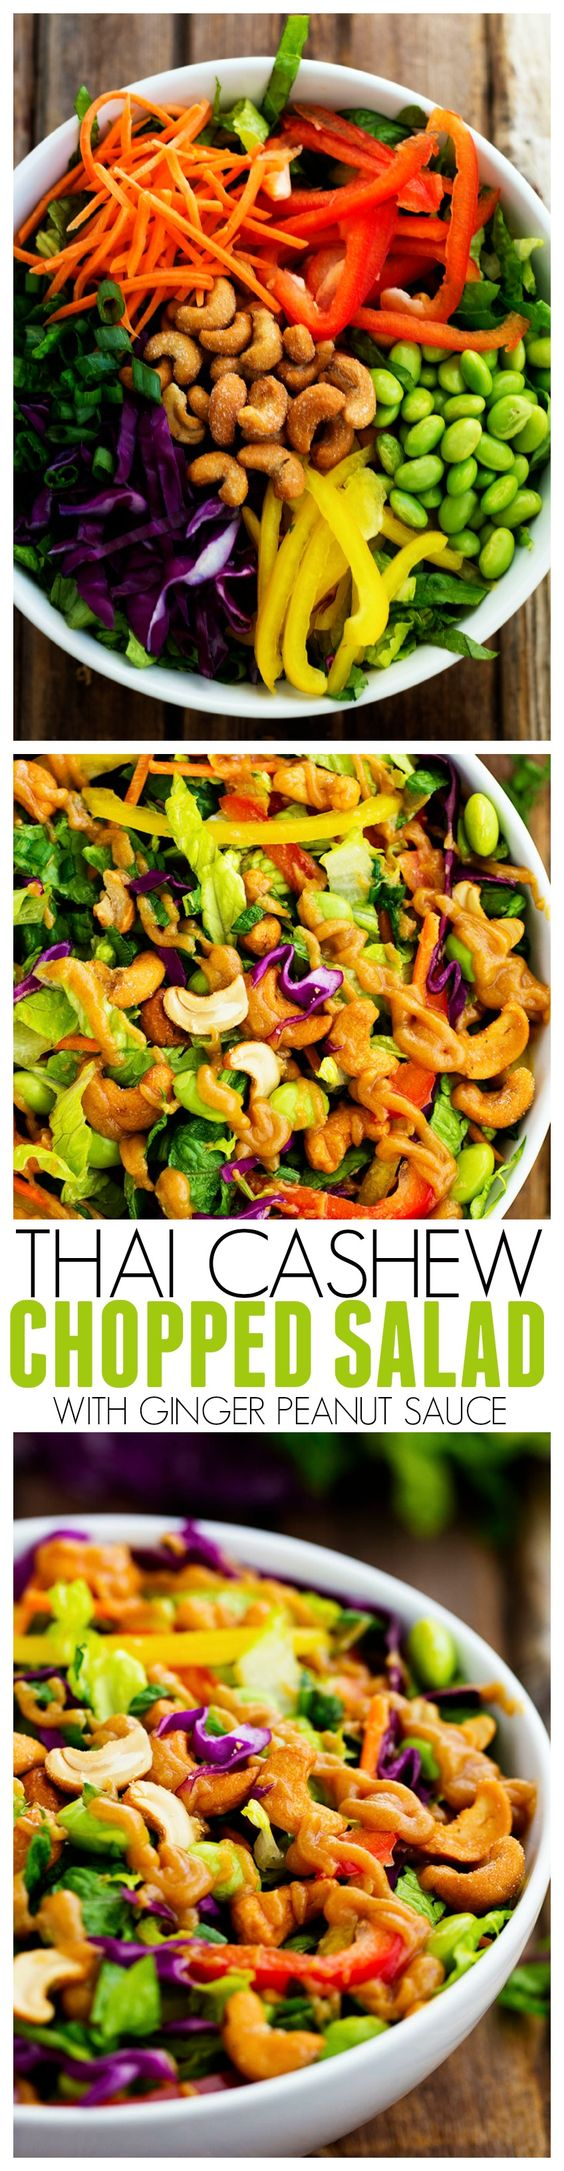 Most Pinned Salad Recipe on Pinterest 9